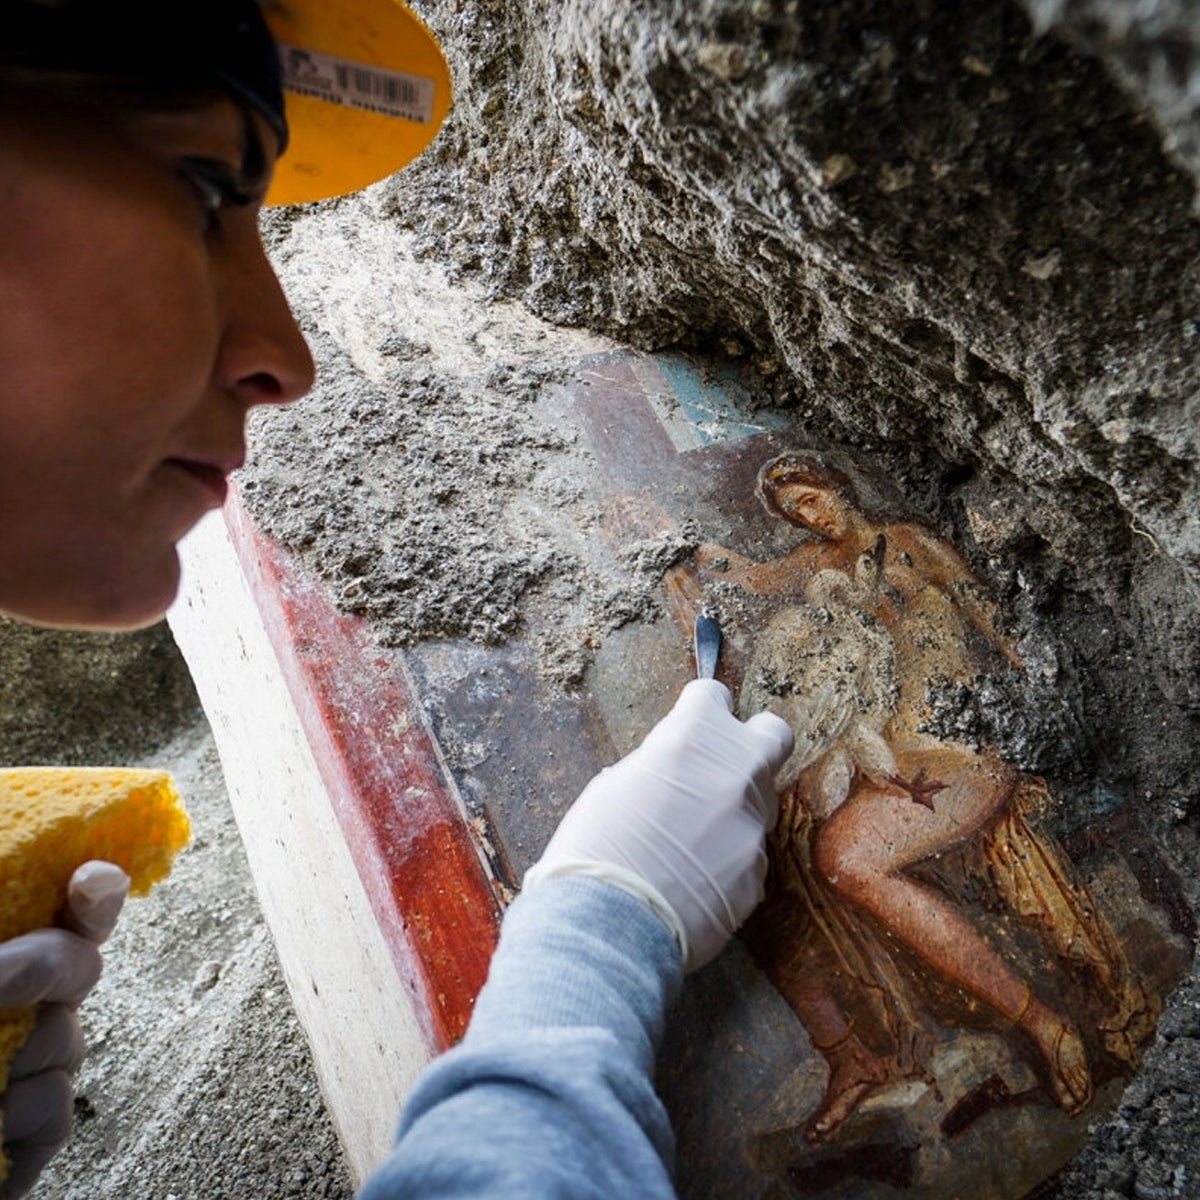 Leda and the Swan, found in Pompeii: picture shows female archaeologist wearing a yellow hat, holding a yellow sponge and scraper, working on the fresco